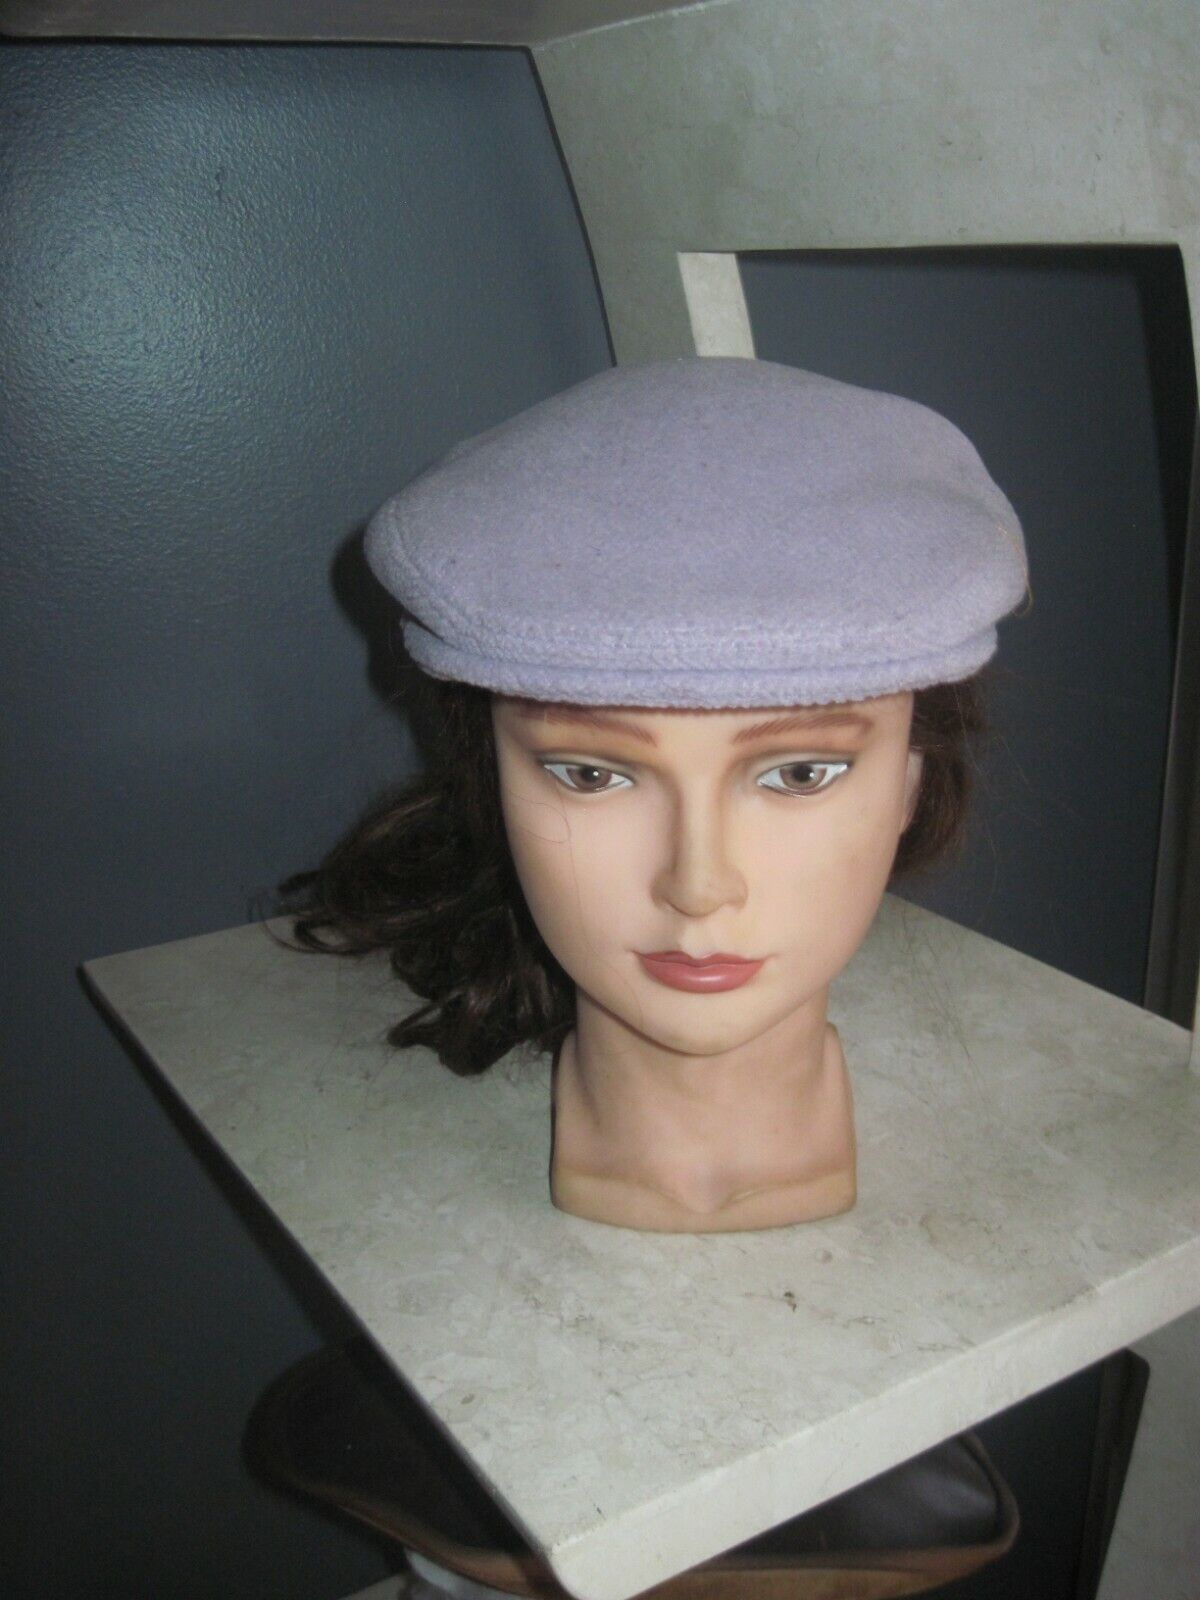 AUTHENTIC WOMEN S BURBERRY WOOL NEWSBOY CABBIE HAT CAP SIZE LILAC  - $32.00